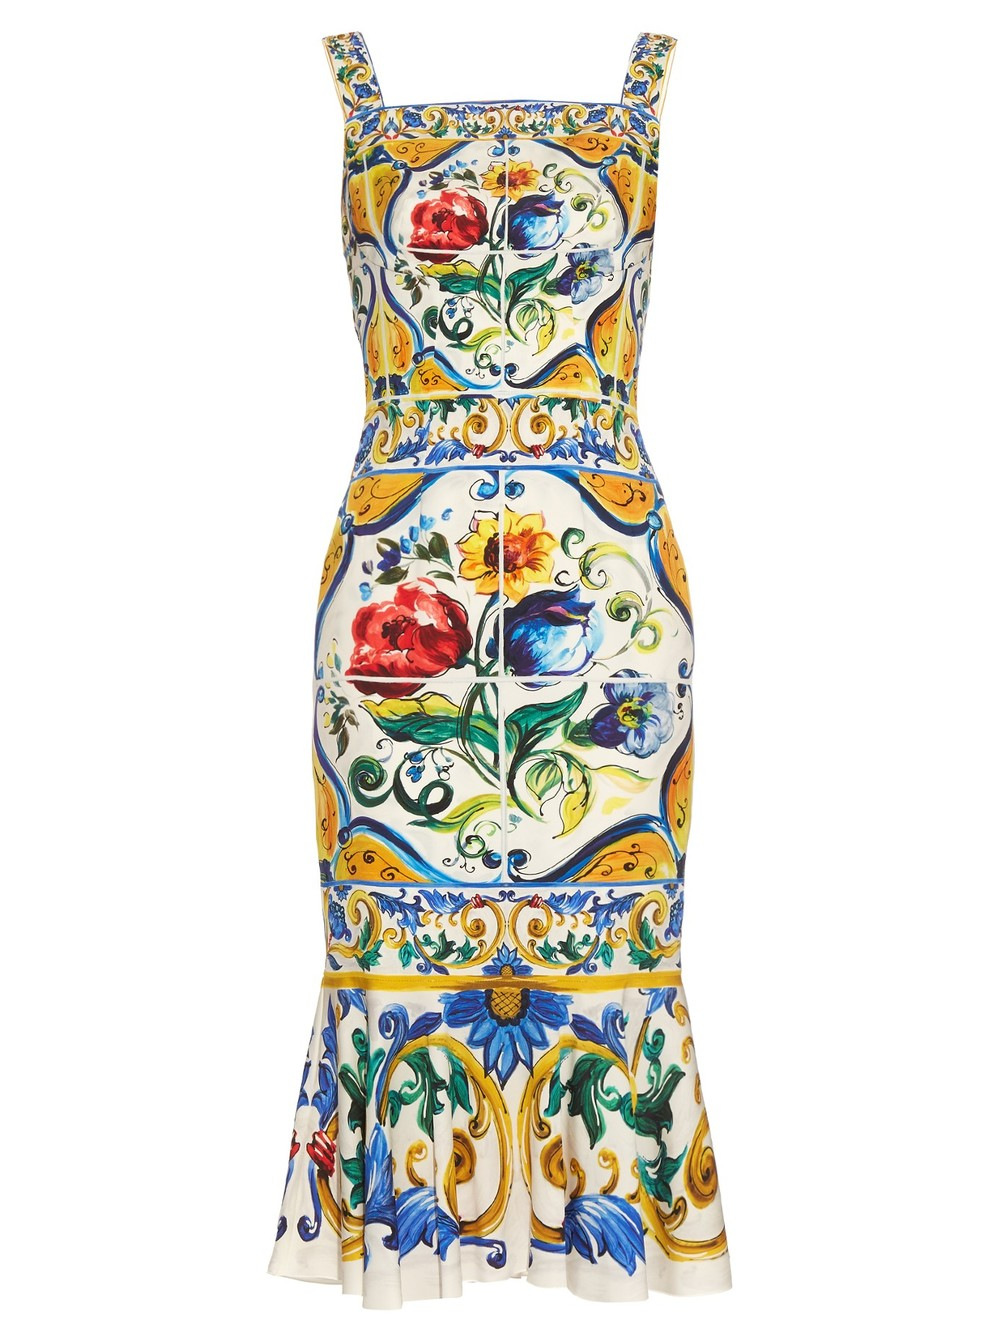 Dolce & Gabbana Majolica-print charmeuse dress, £1,550